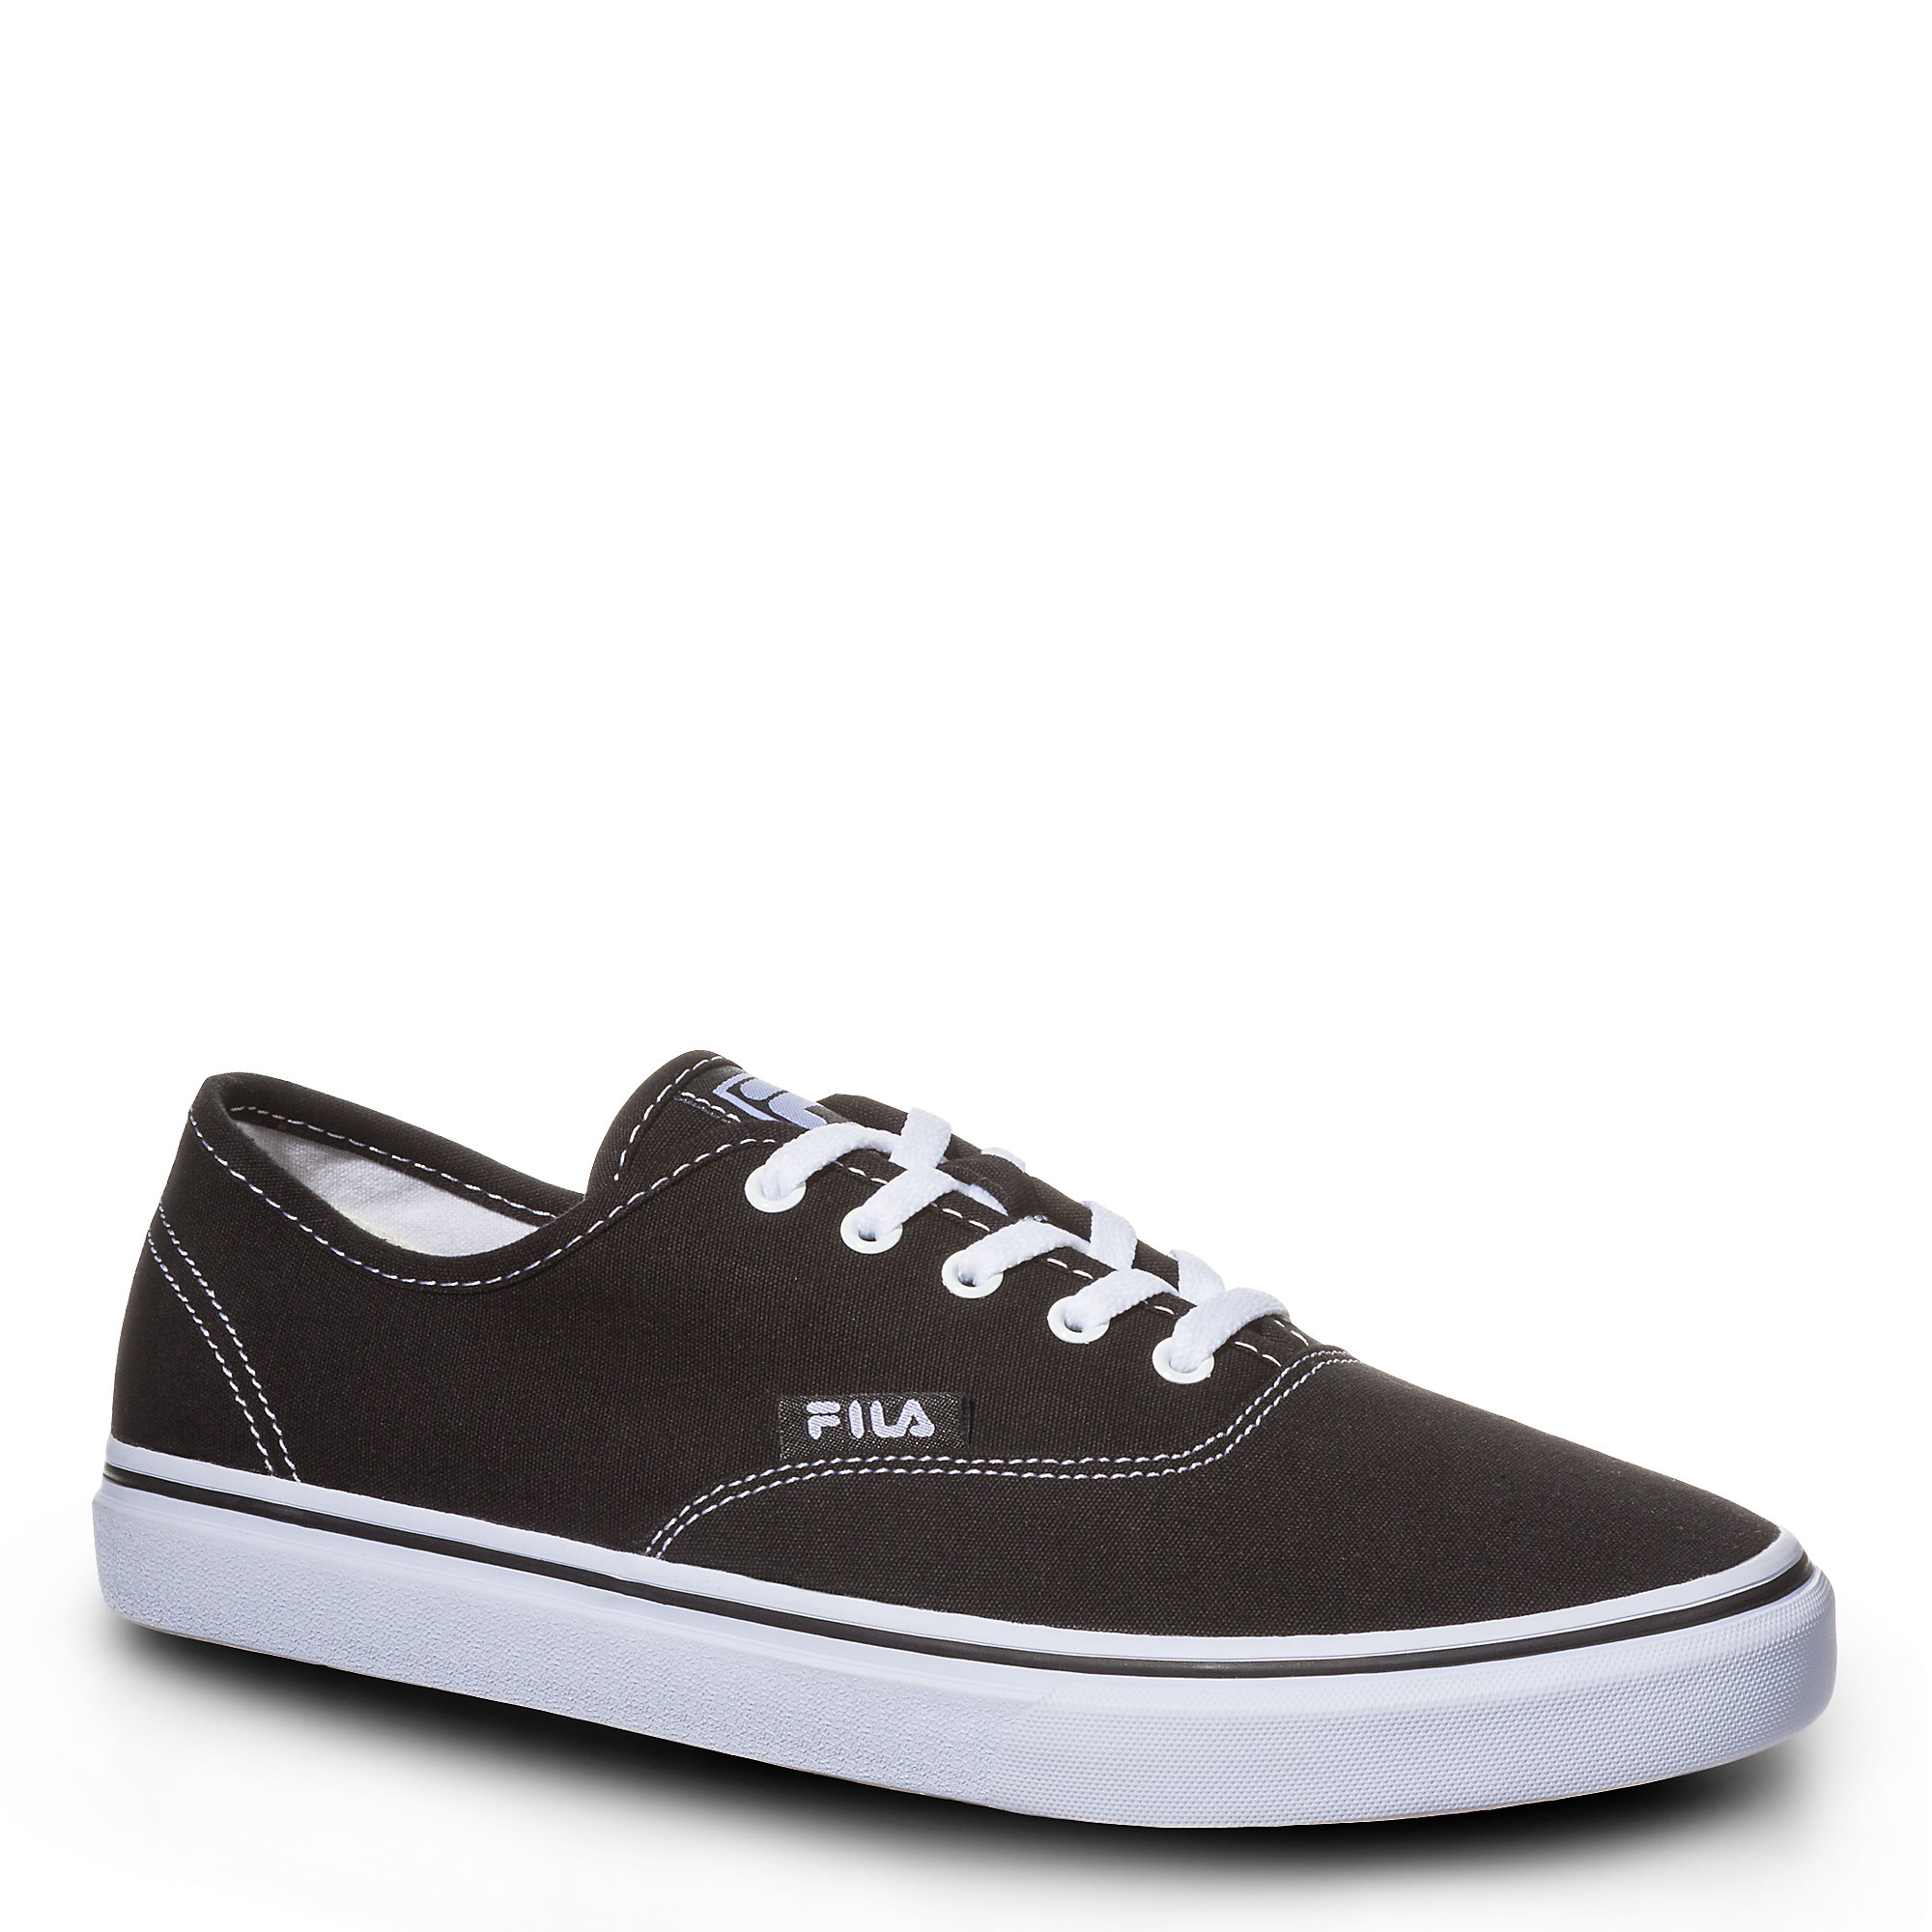 FILA Mens Classic Canvas Shoes